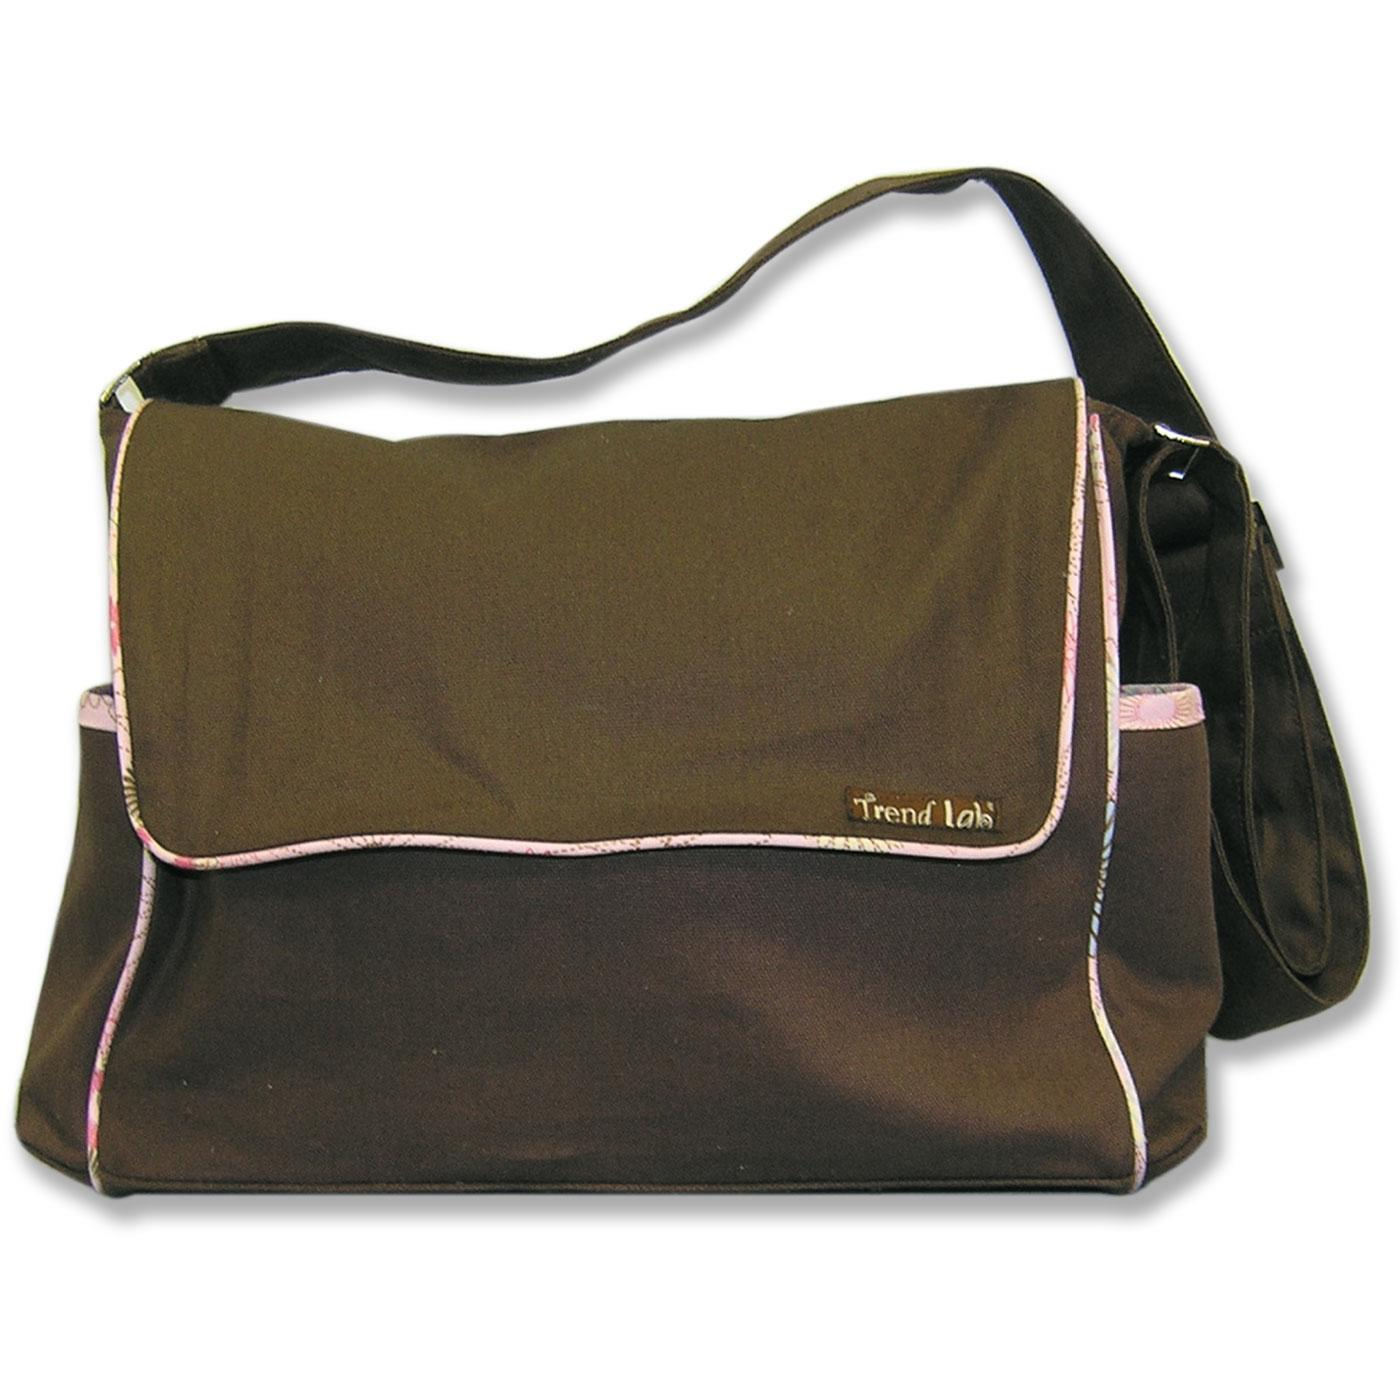 Trend Lab Messenger Diaper Bag - Brown/Spirograph